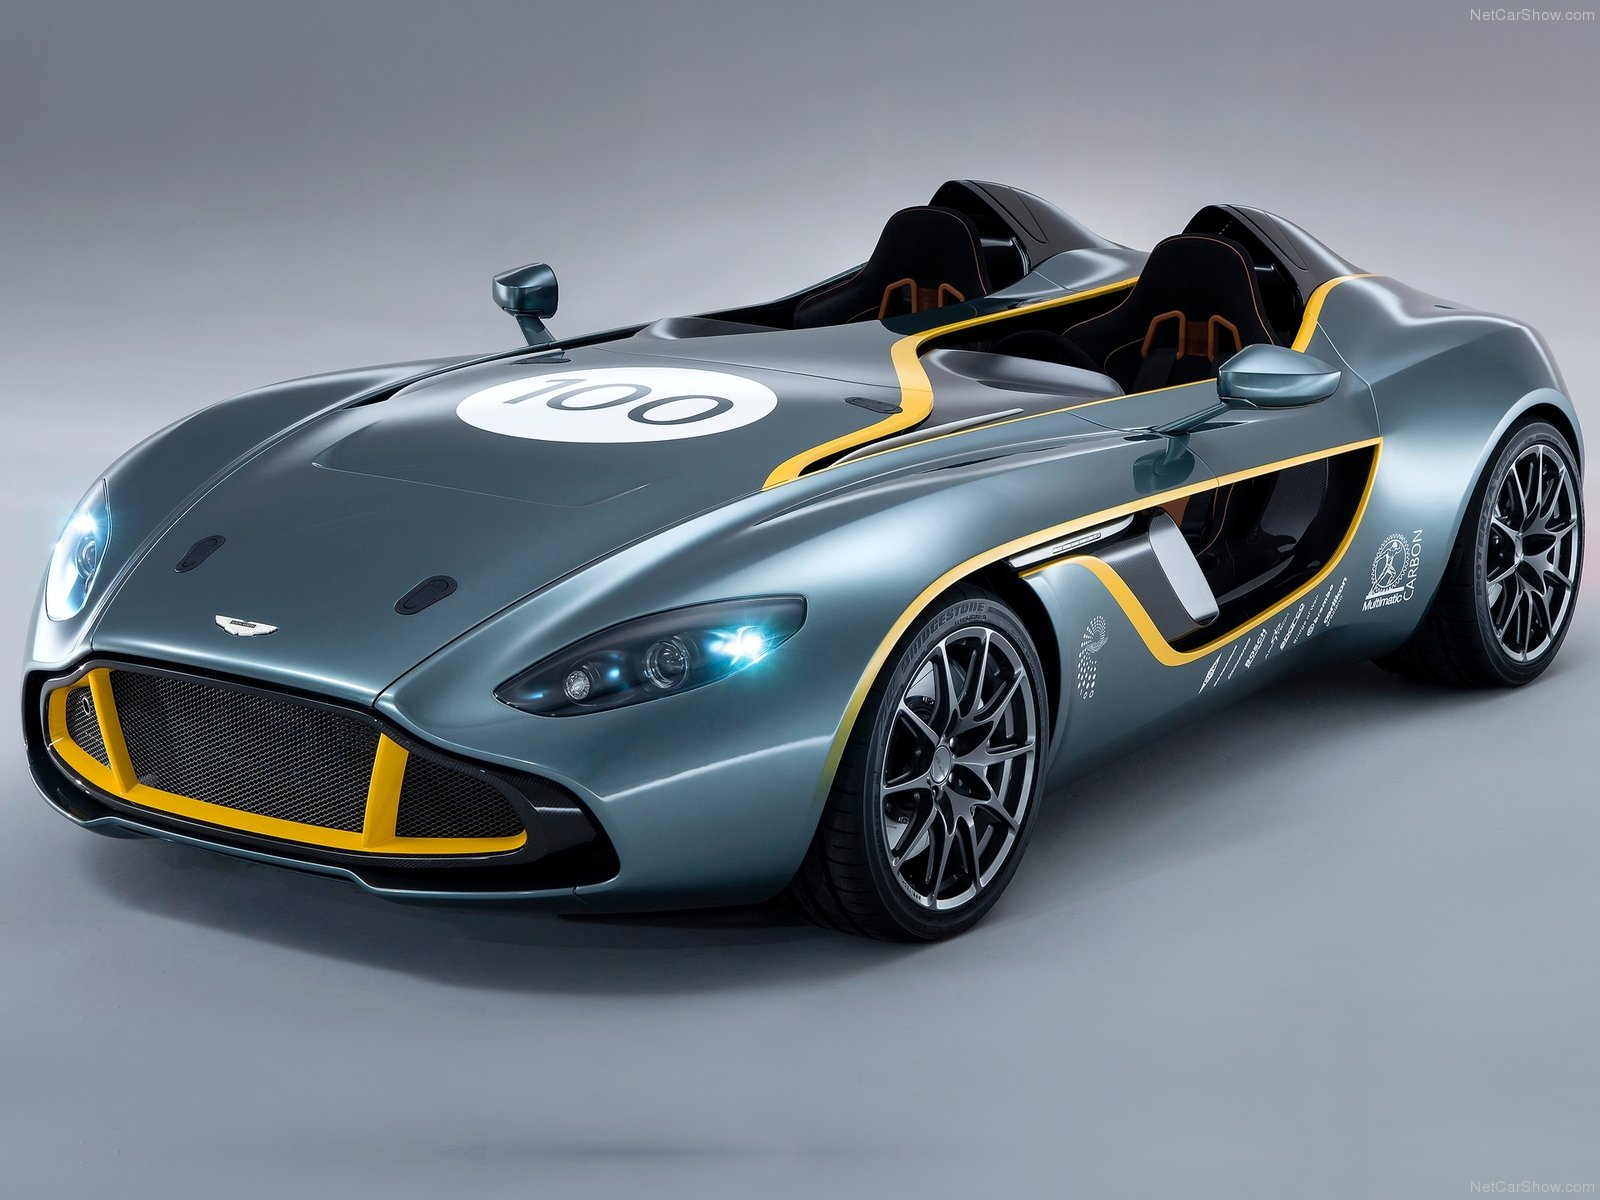 2013 aston martin cc100 speedster concept review spec release date